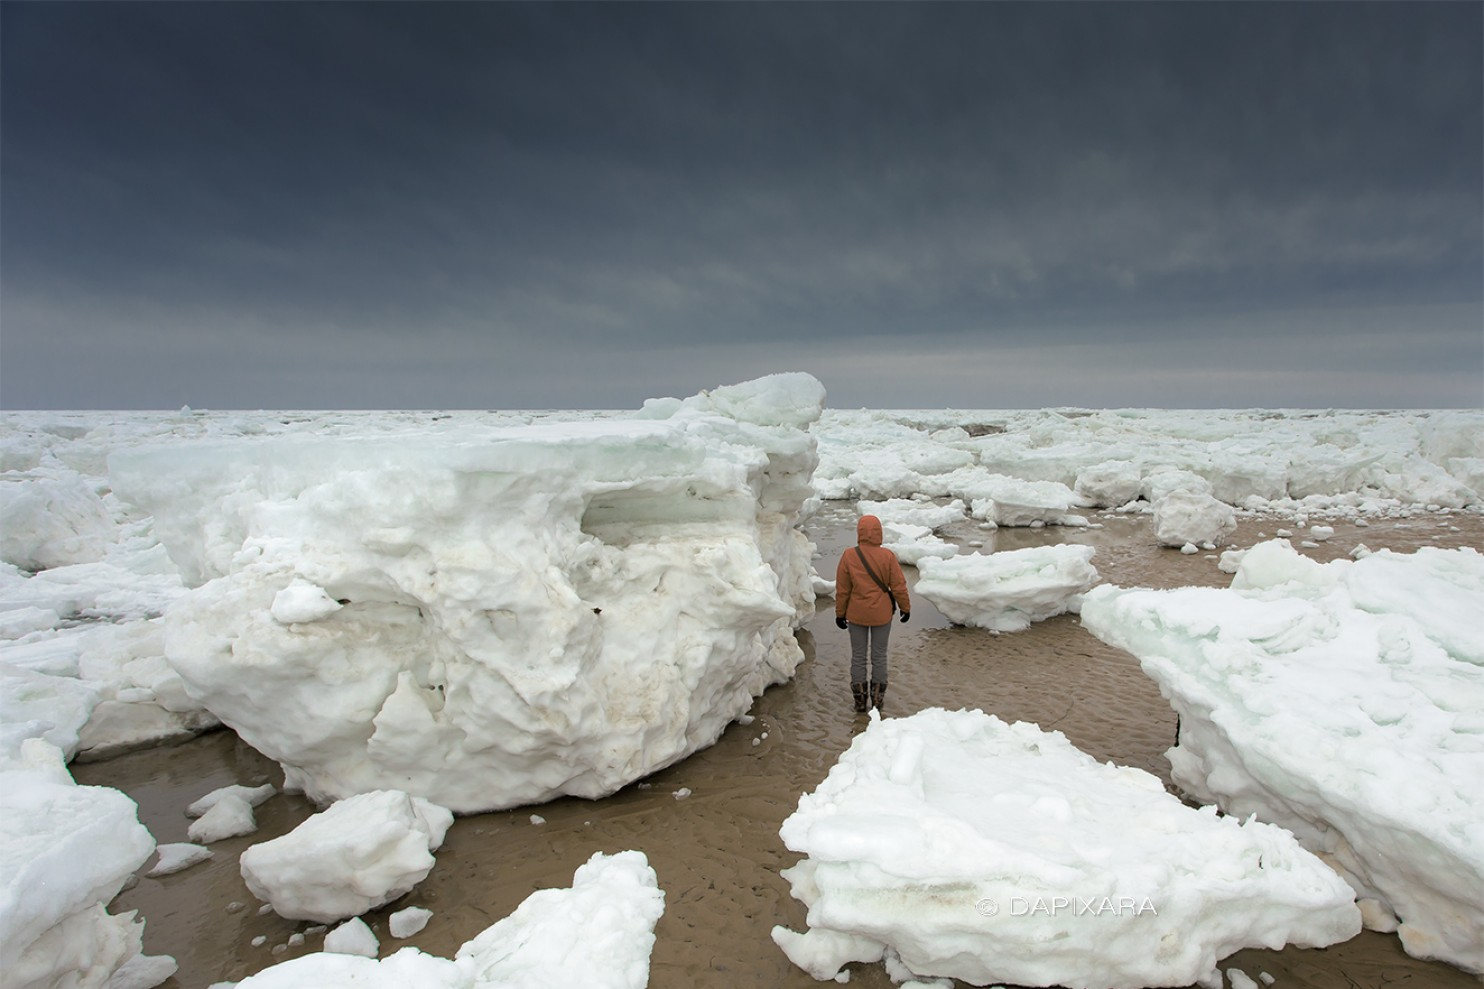 icebergs on the beaches of cape cod. Photo by Dapixara via the washington post